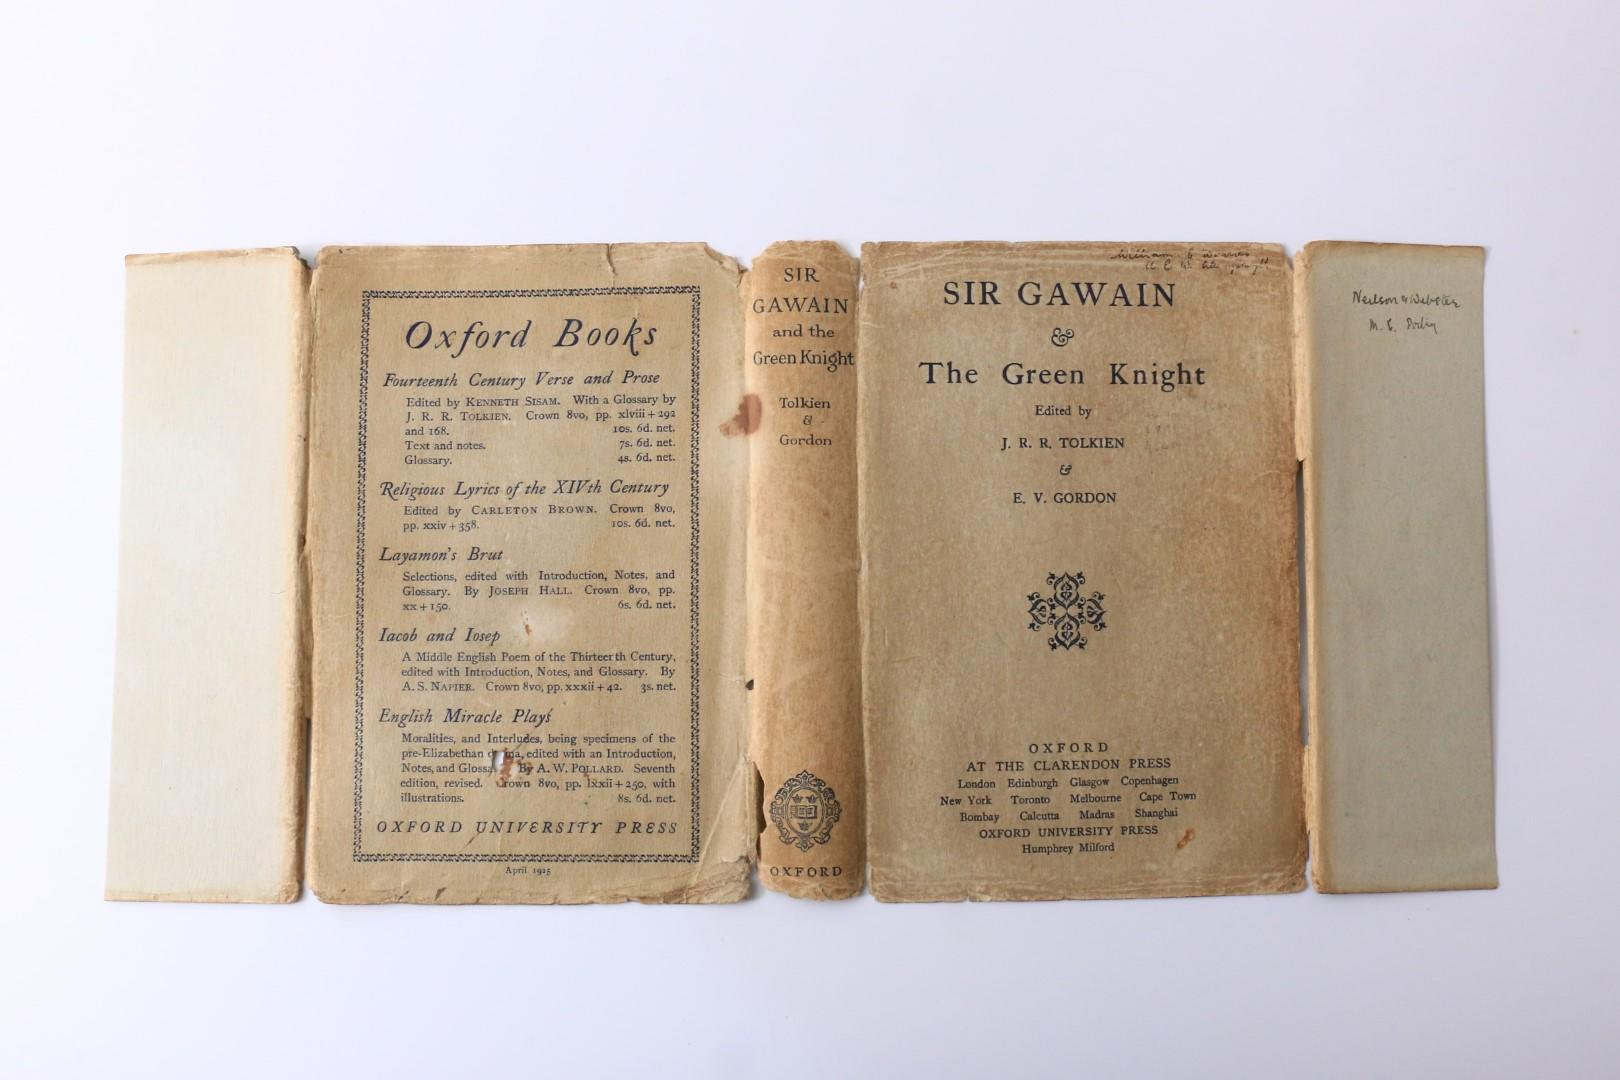 J.R.R. Tolkien - Sir Gawain and the Green Knight - Oxford University Press, 1925, First Edition.